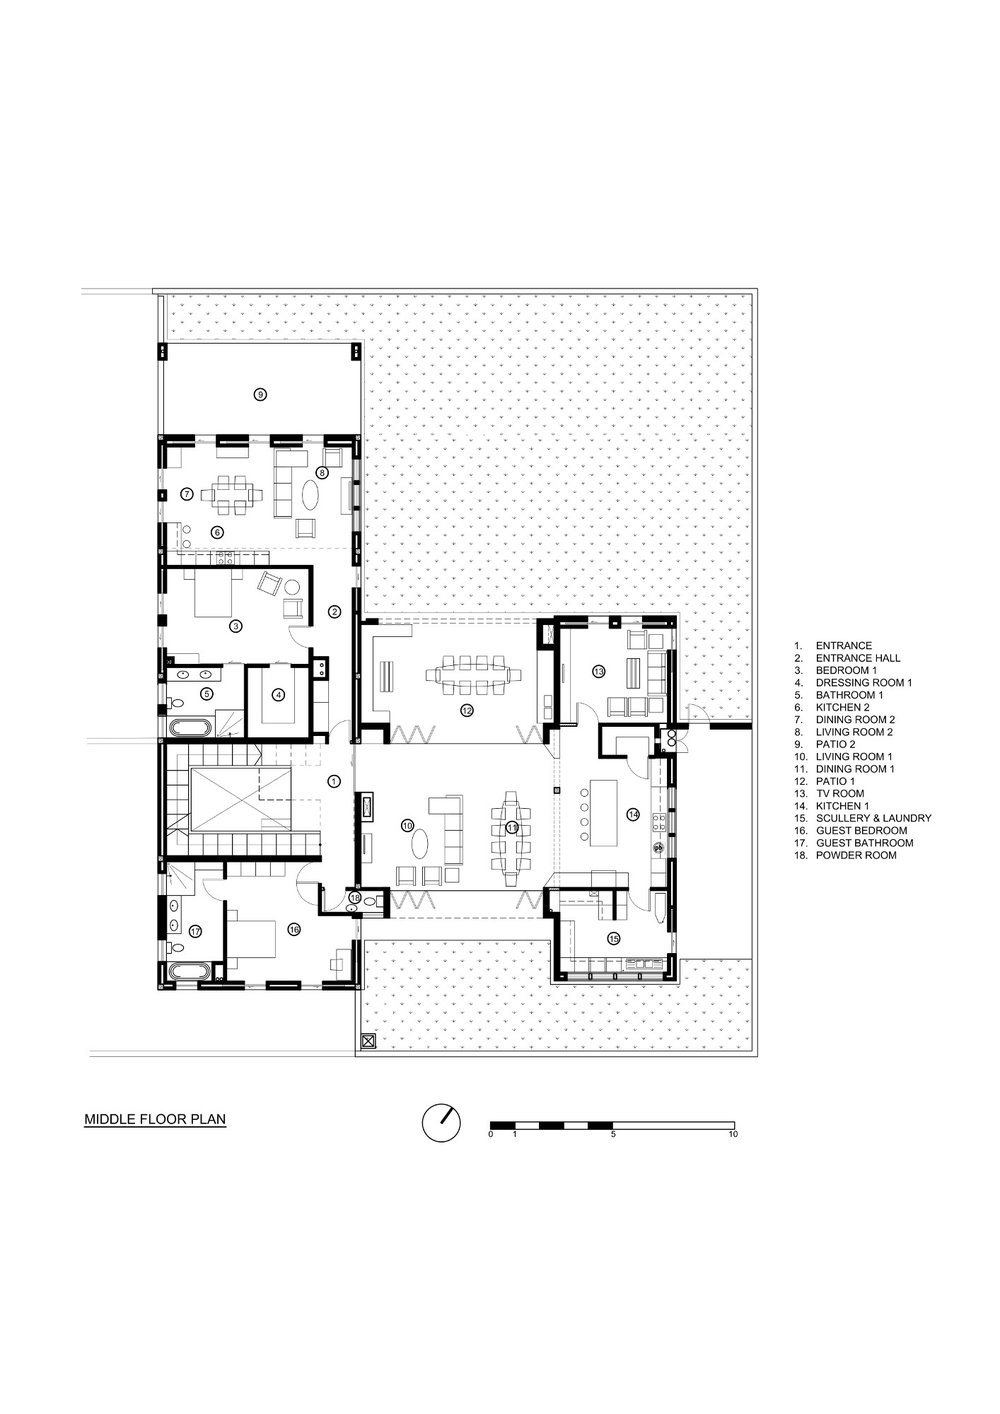 MIDDLE FLOOR PLAN small.jpg